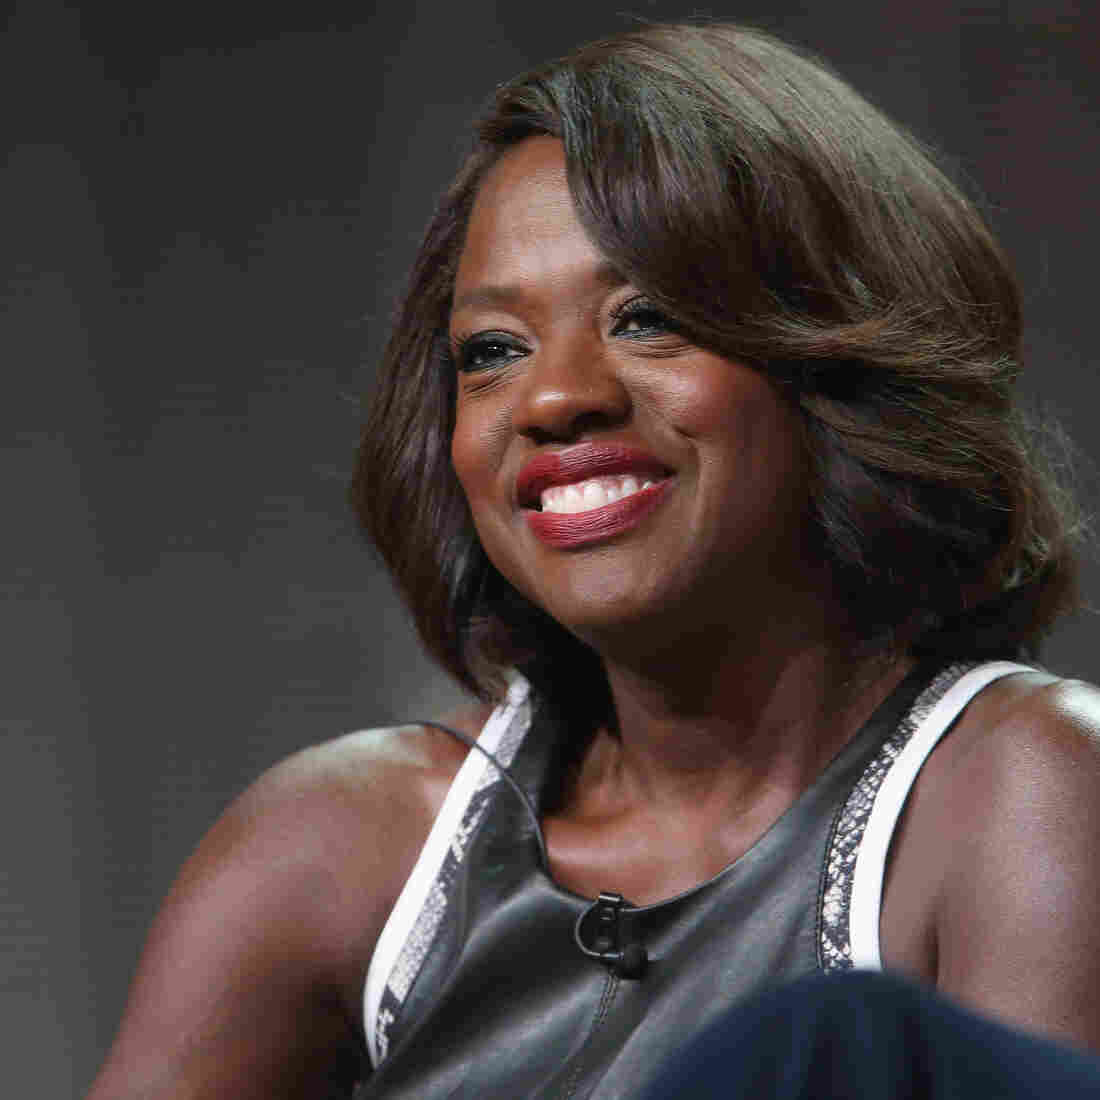 Viola Davis Gets Groundbreaking Role As ABC Bets On Diversity